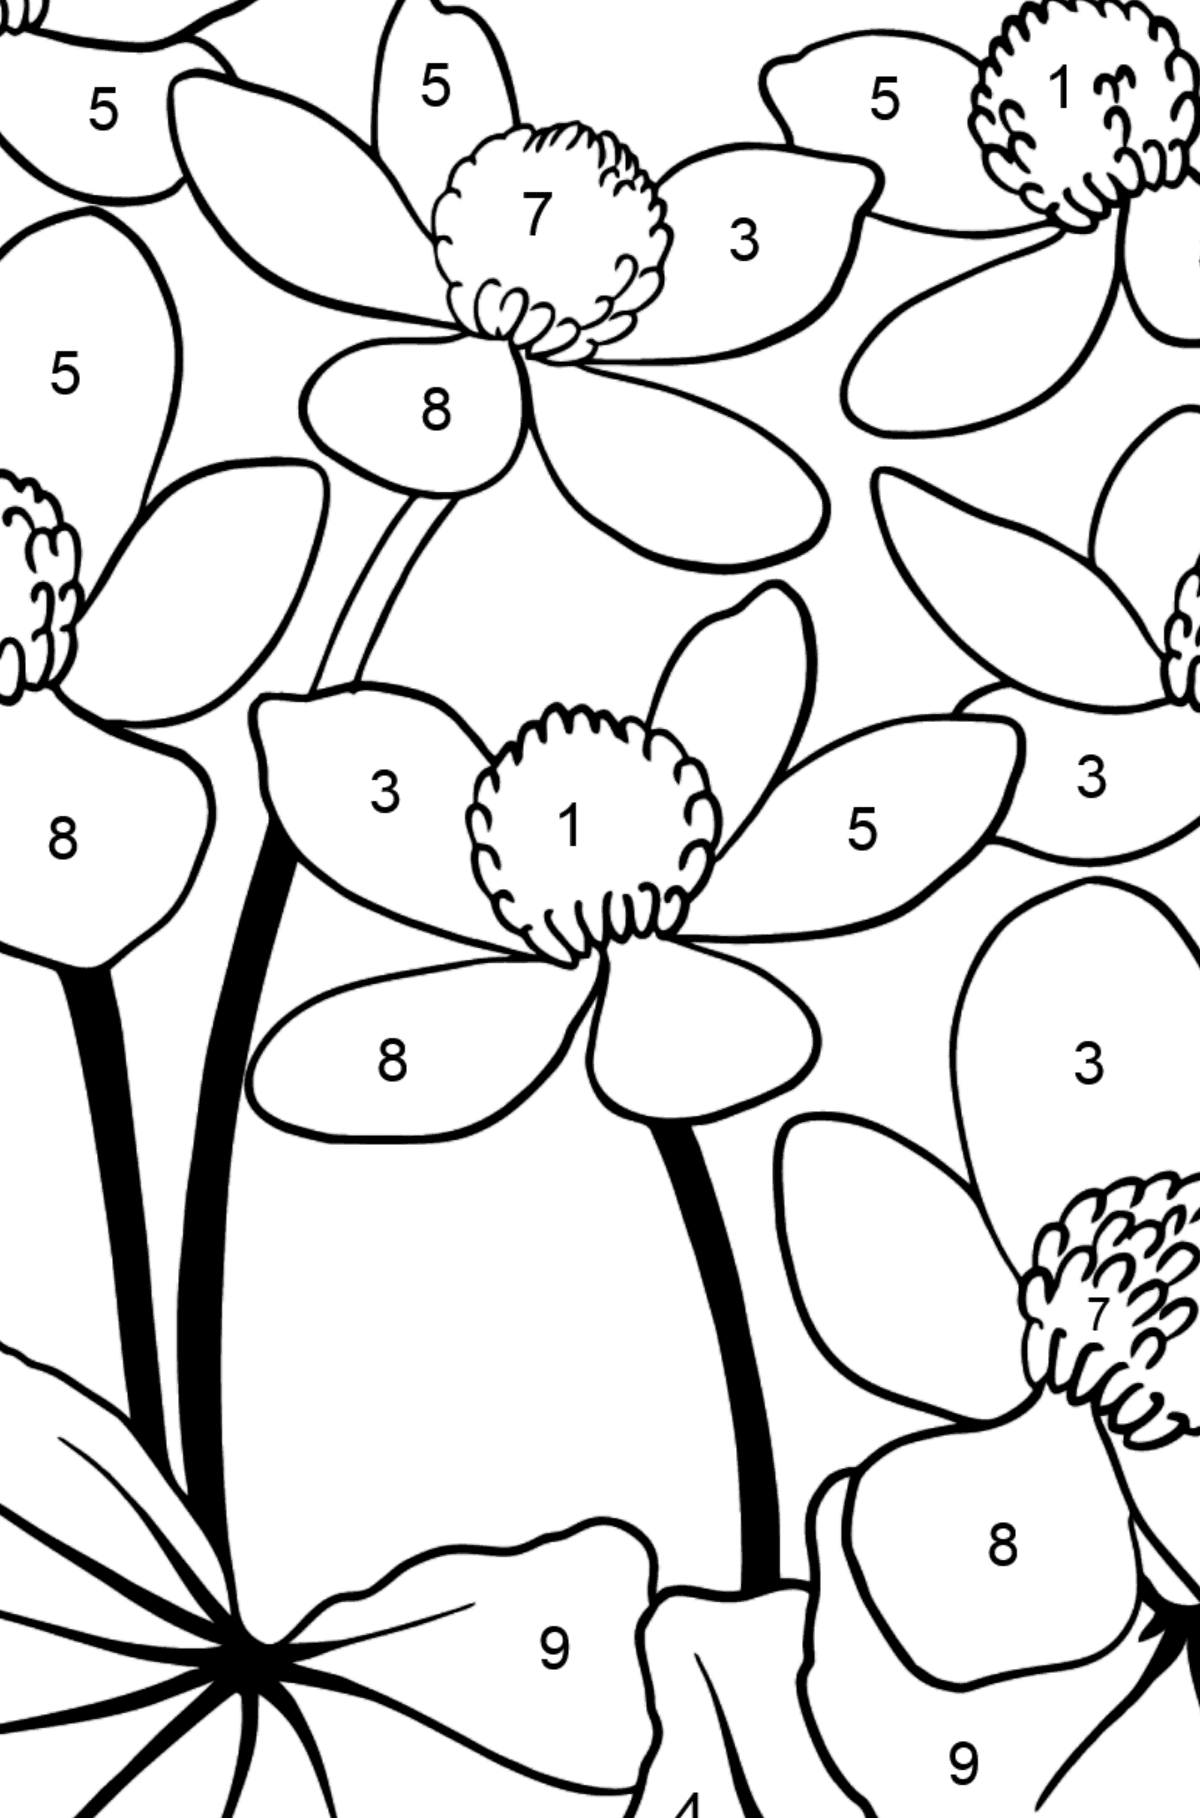 Flower Coloring Page - Marsh Marigold - Coloring by Numbers for Kids